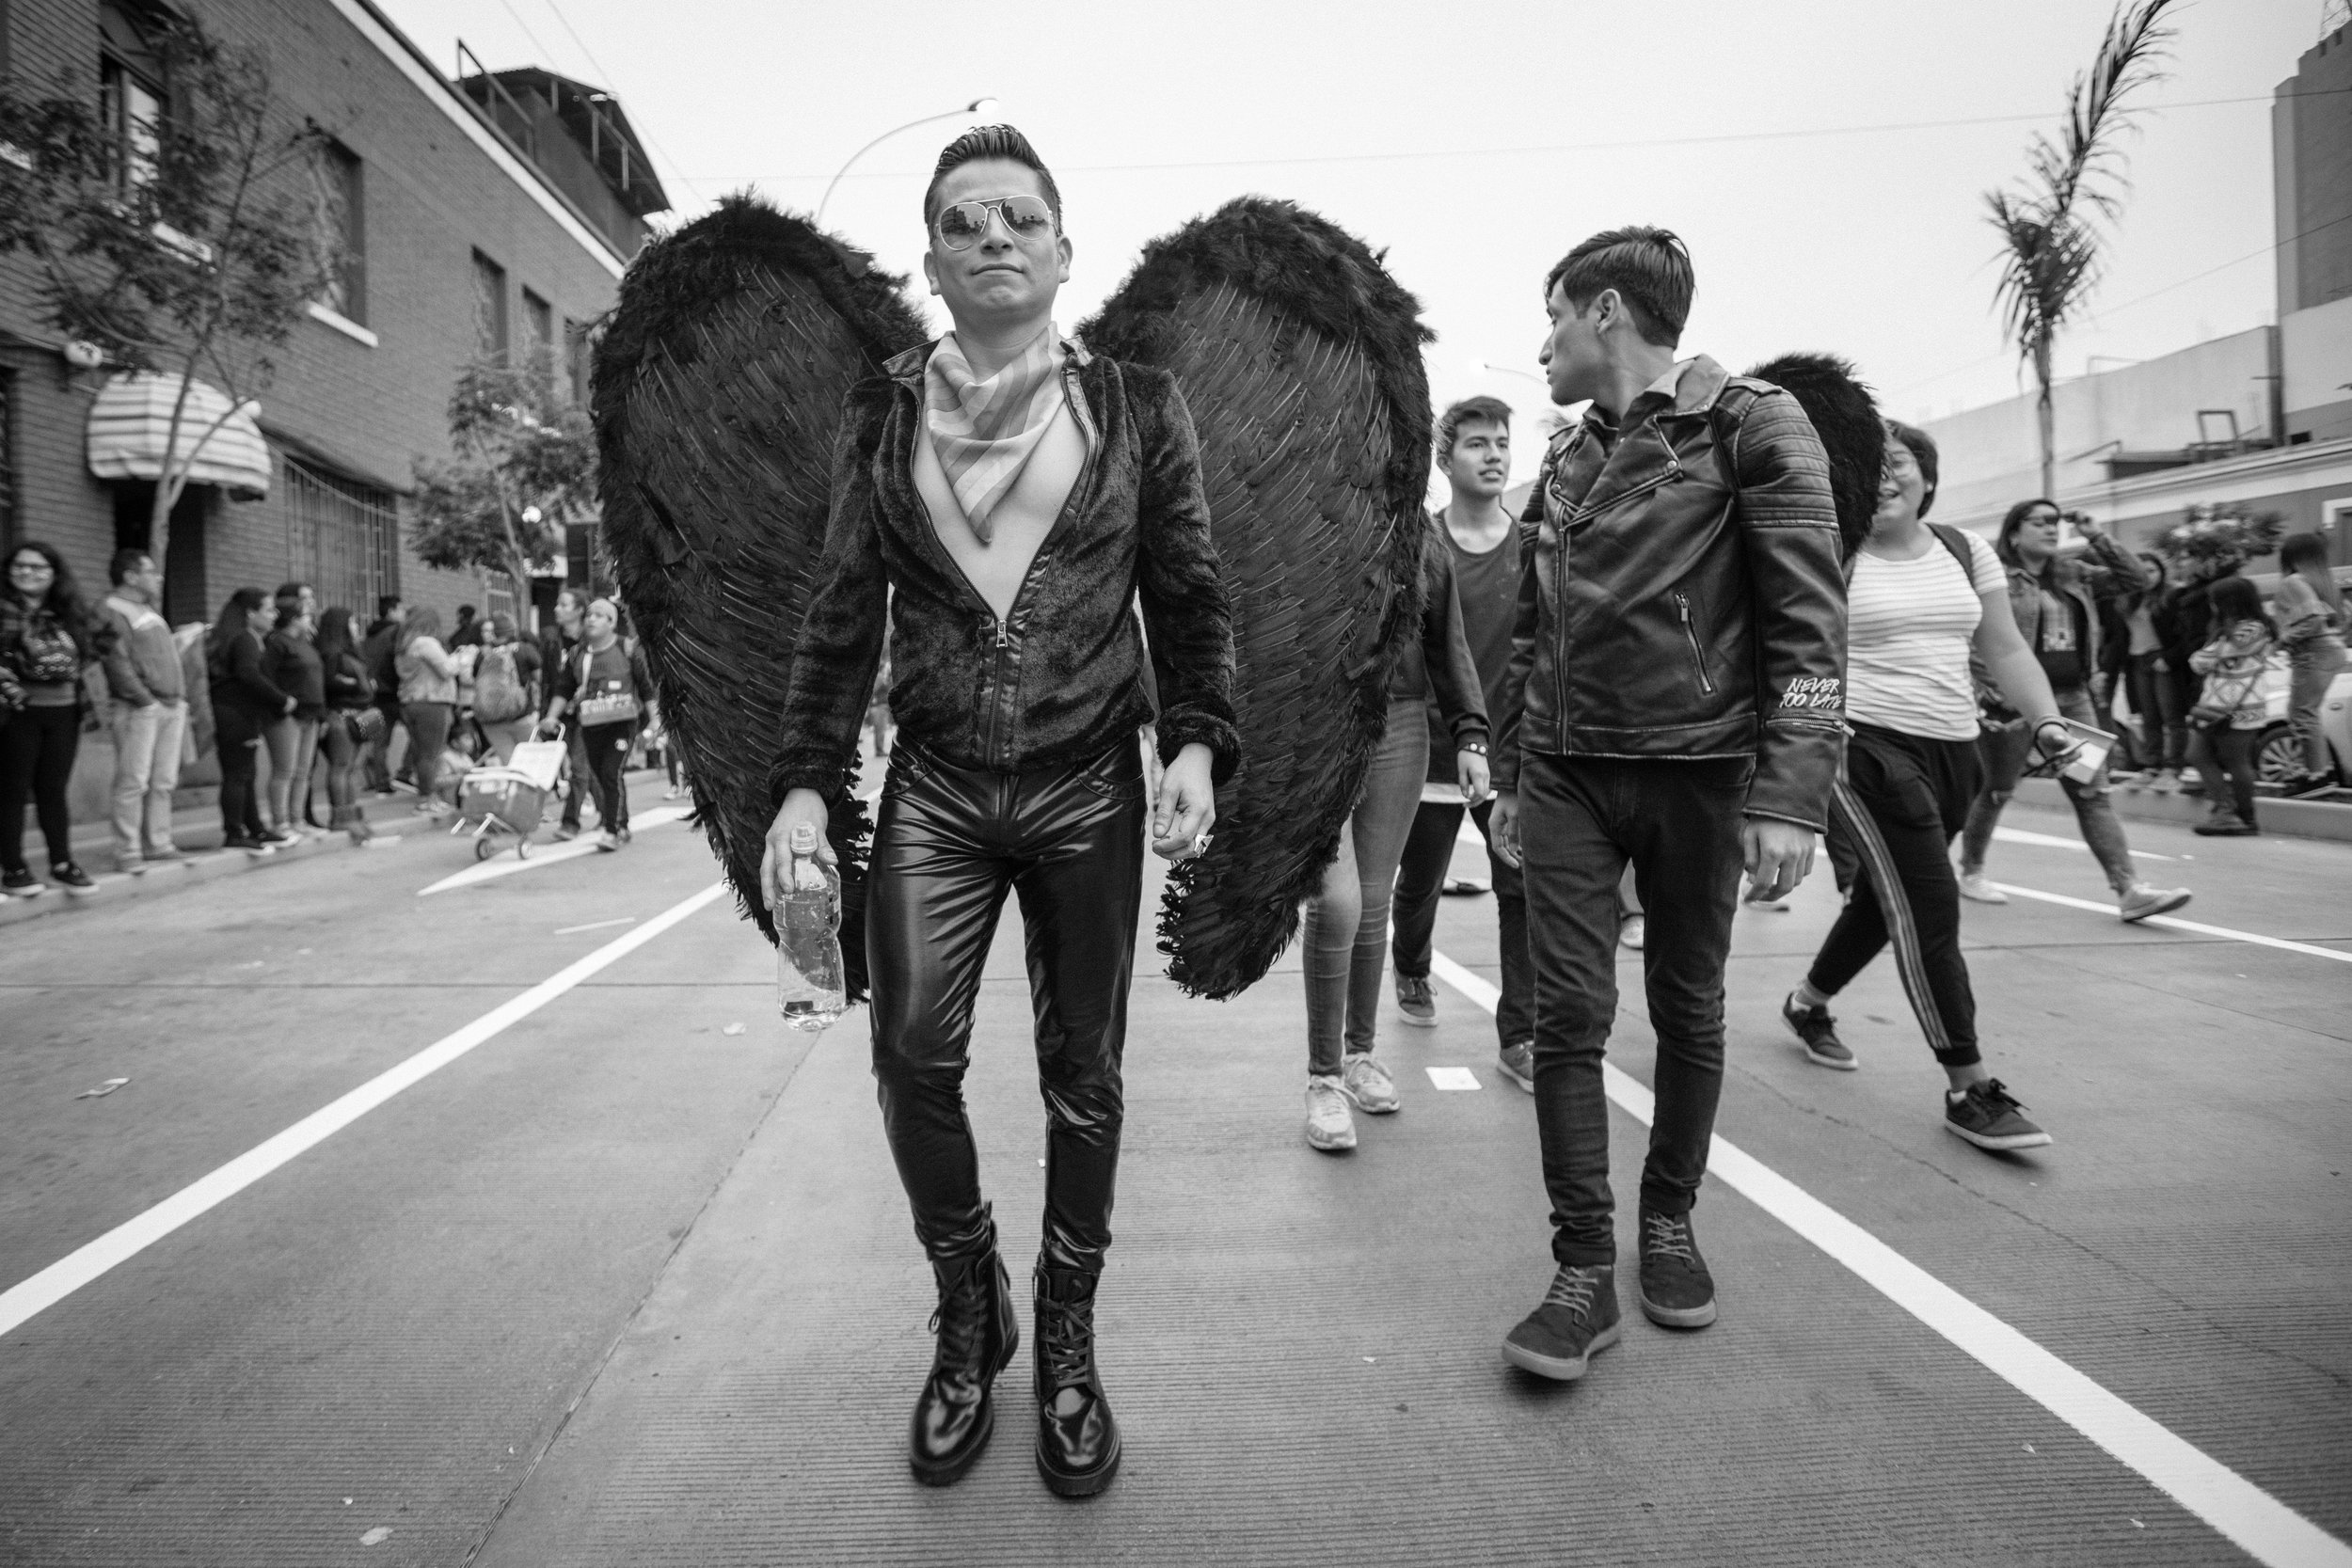 Candid street photography at the LGBT Lima Pride.